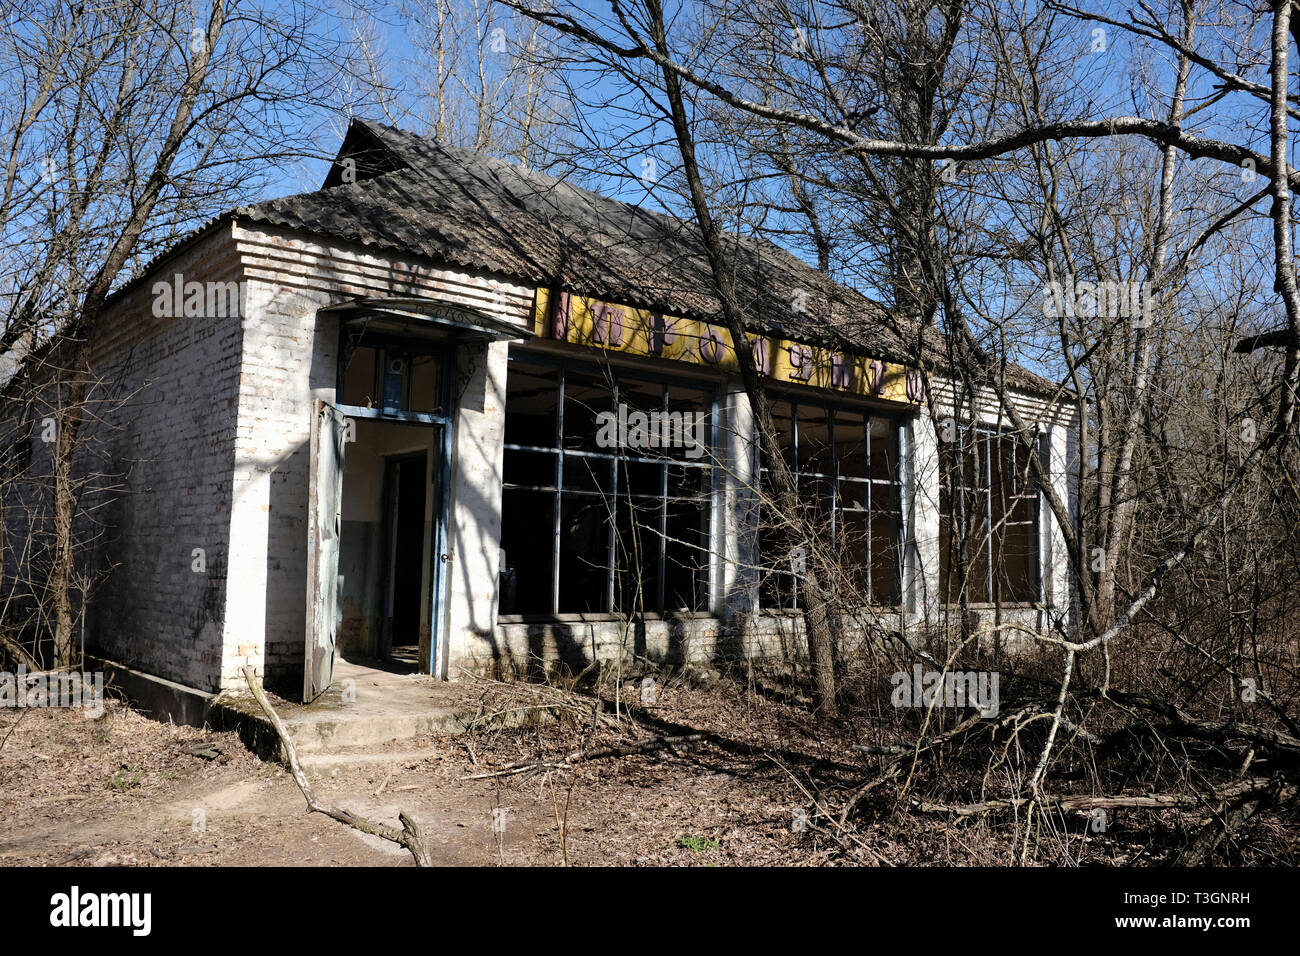 Abandoned building in the village of Zalissia, inside the Chernobyl exclusion zone - Stock Image